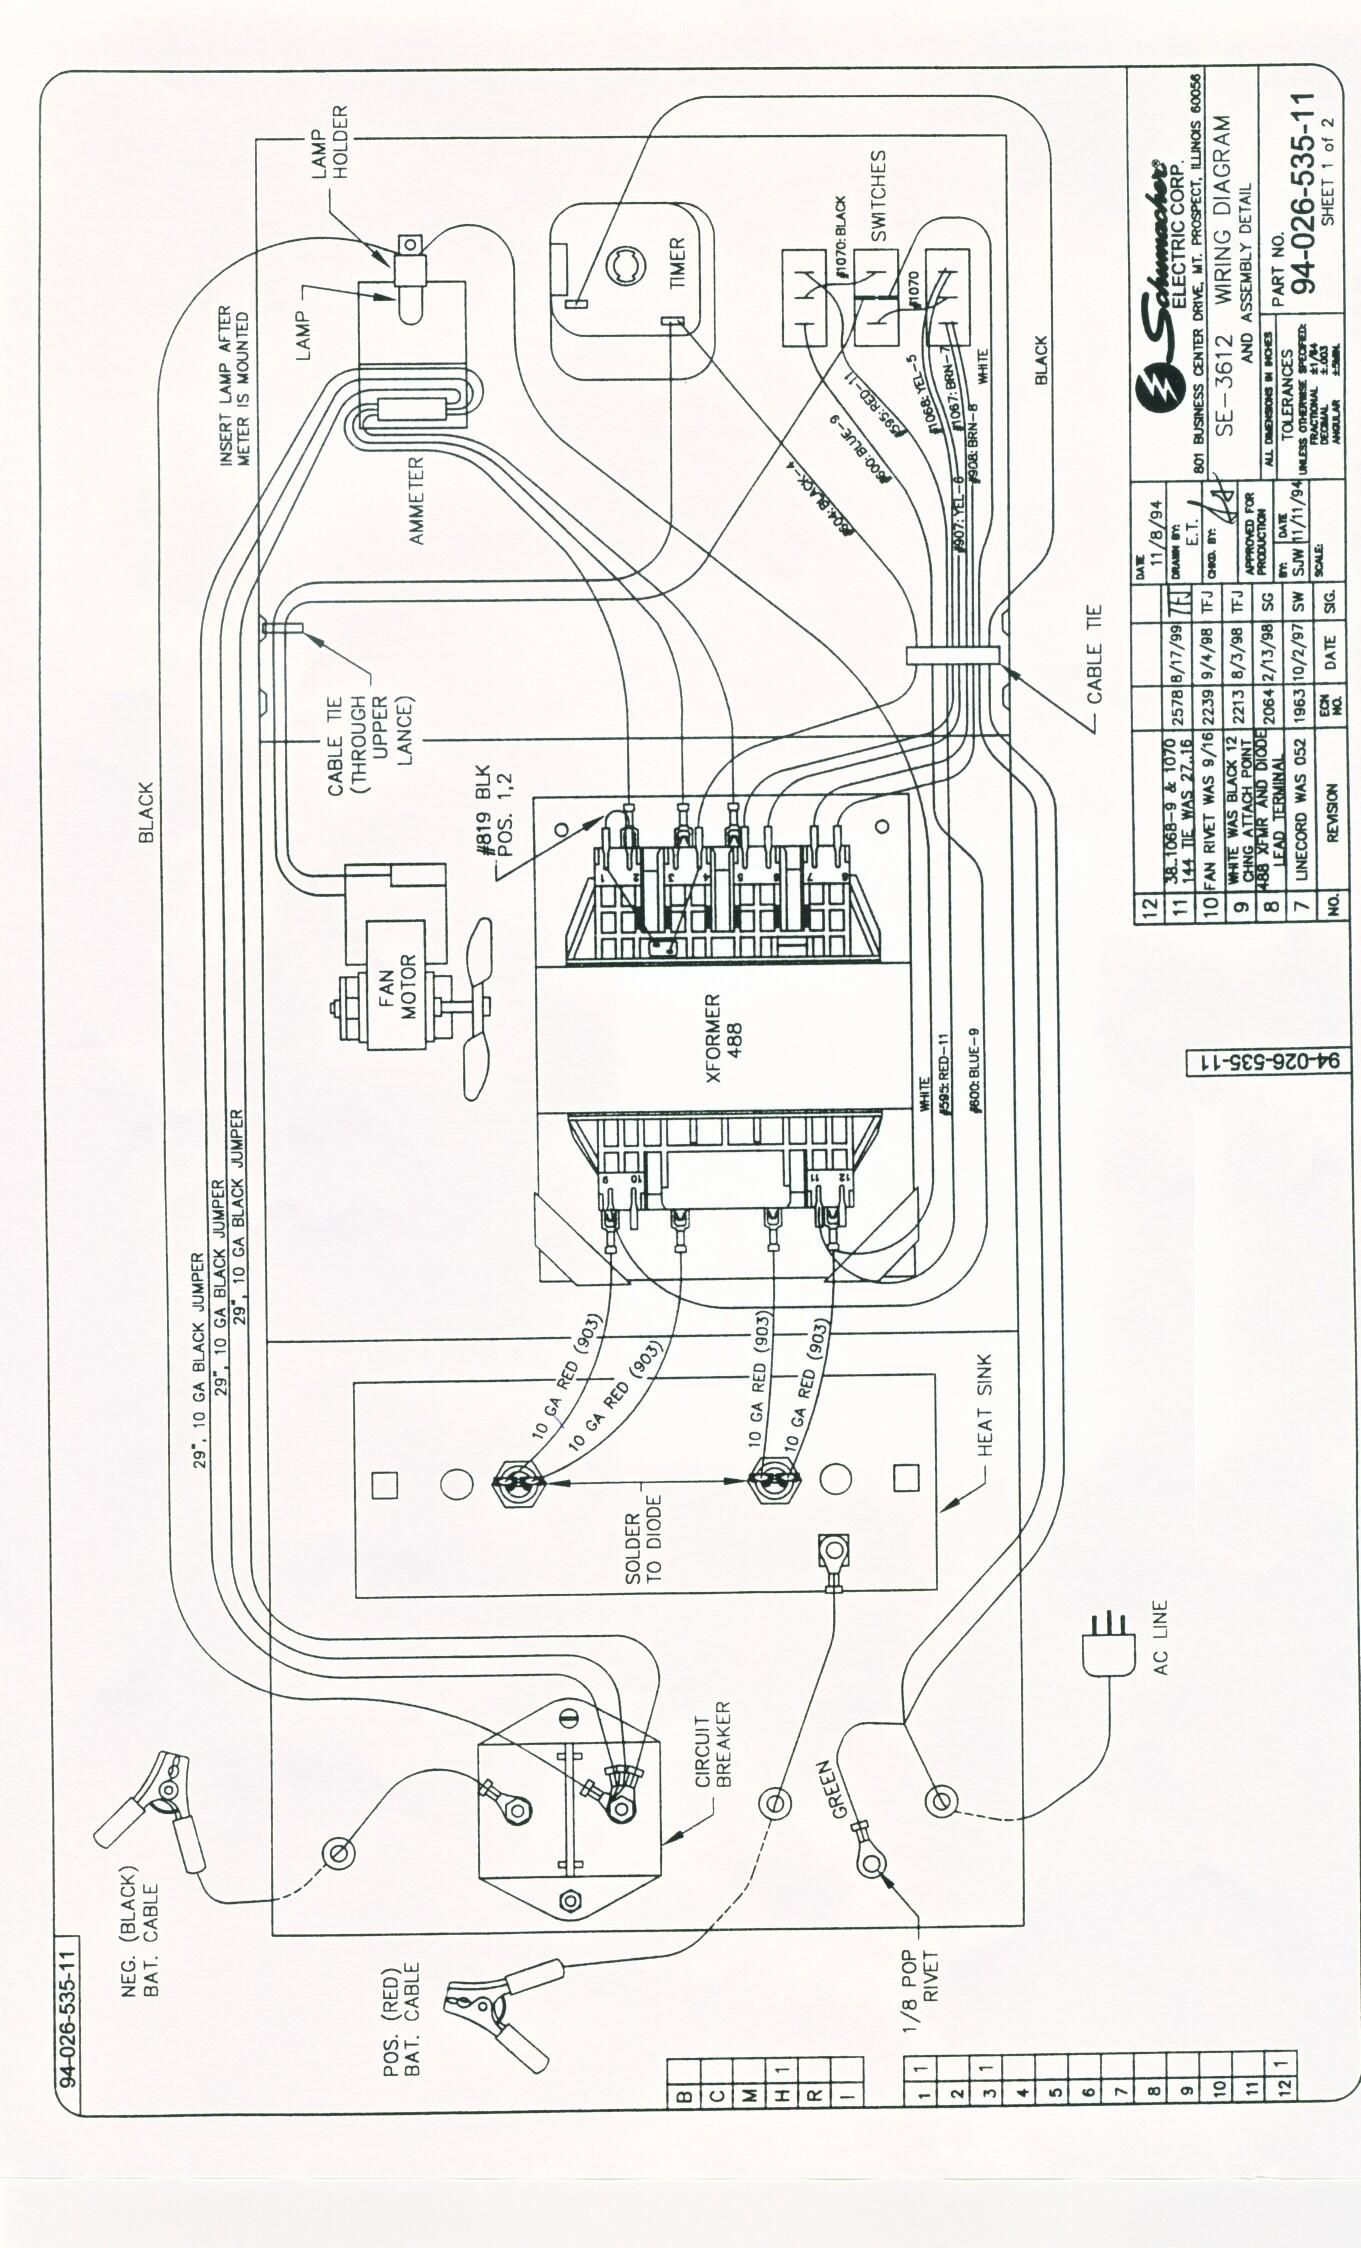 Car Charger Wiring Diagram Library. Schumacher Battery Charger Wiring Diagram Car Audio Electric Cars Dremel. Wiring. Gem Car Battery Wiring Diagram Refresher At Scoala.co